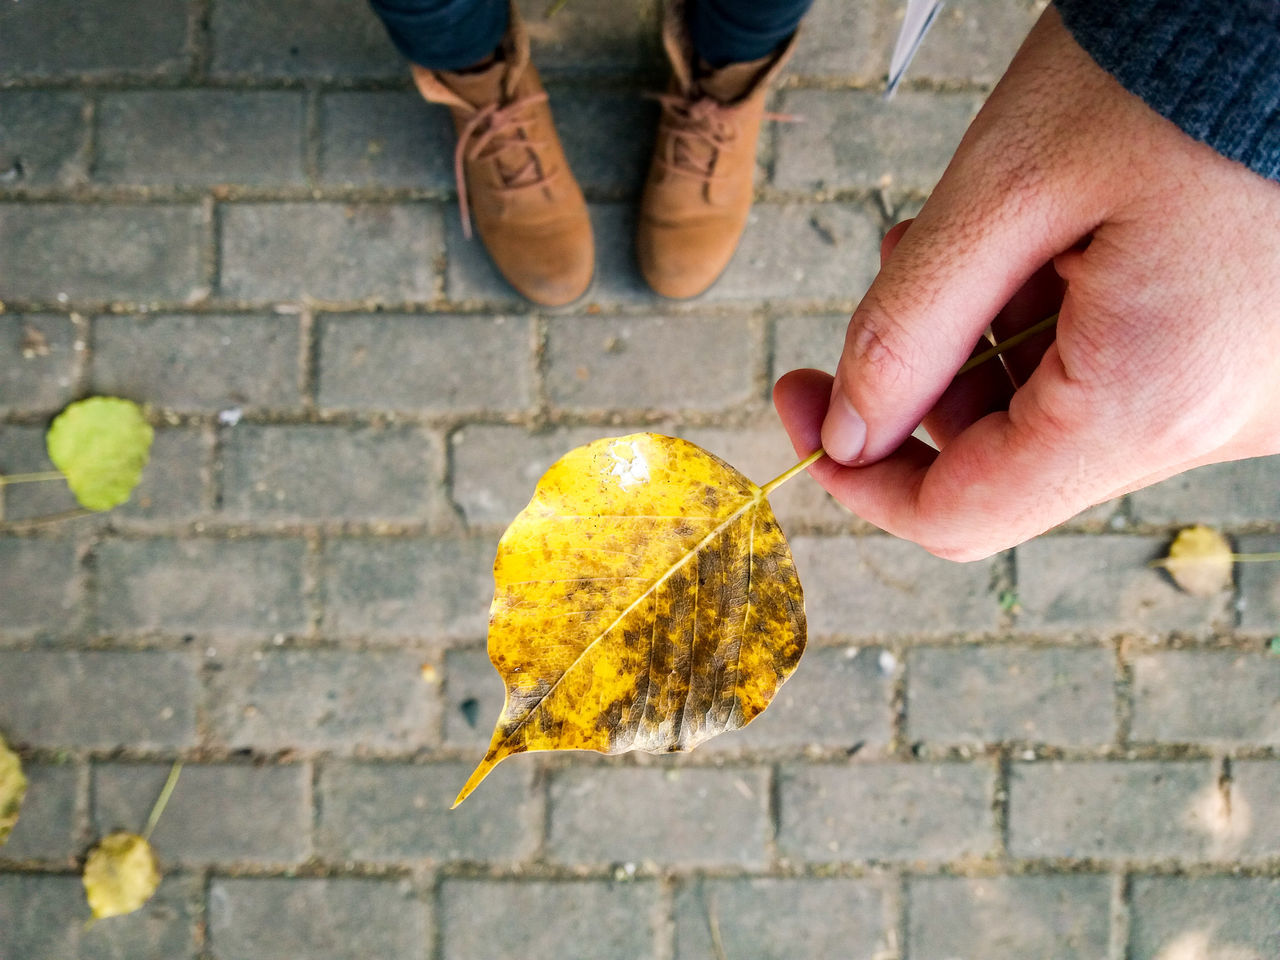 Yellow Human Hand Real People People Close-up Outdoors Autumn Autumn Colors Leaf Fallen Leaves Boots Autumn Is Coming Brick Pavement One Person Human Body Part Looking Down Samsungphoto Beauty In Nature Travel Maximum Closeness